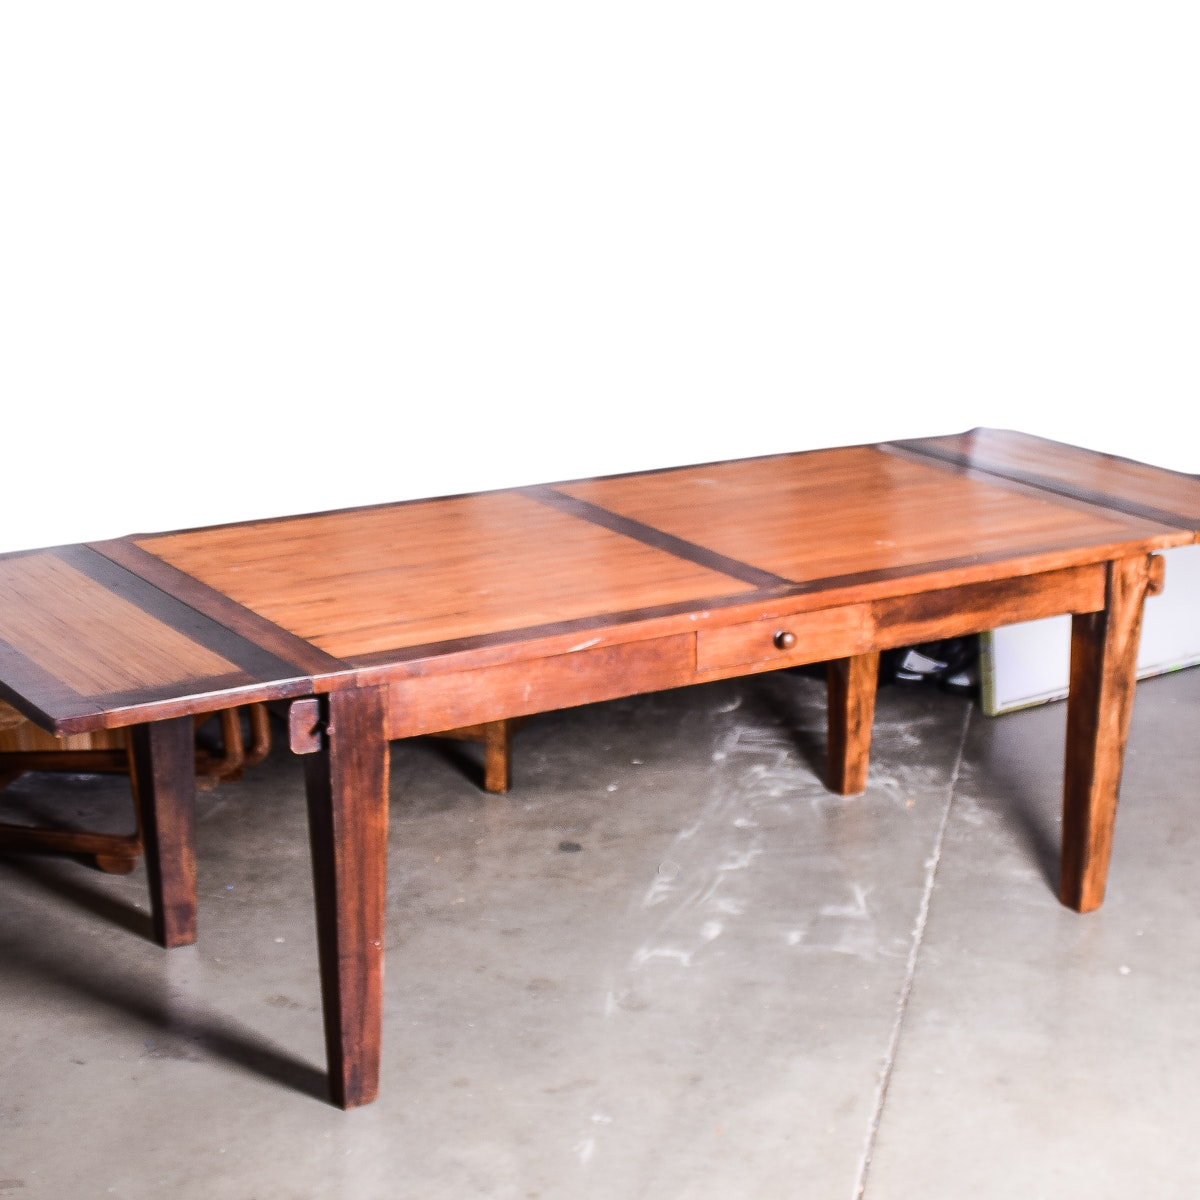 Dining Room Table For 2: Dining Room Table With Two Extension Leaves : EBTH